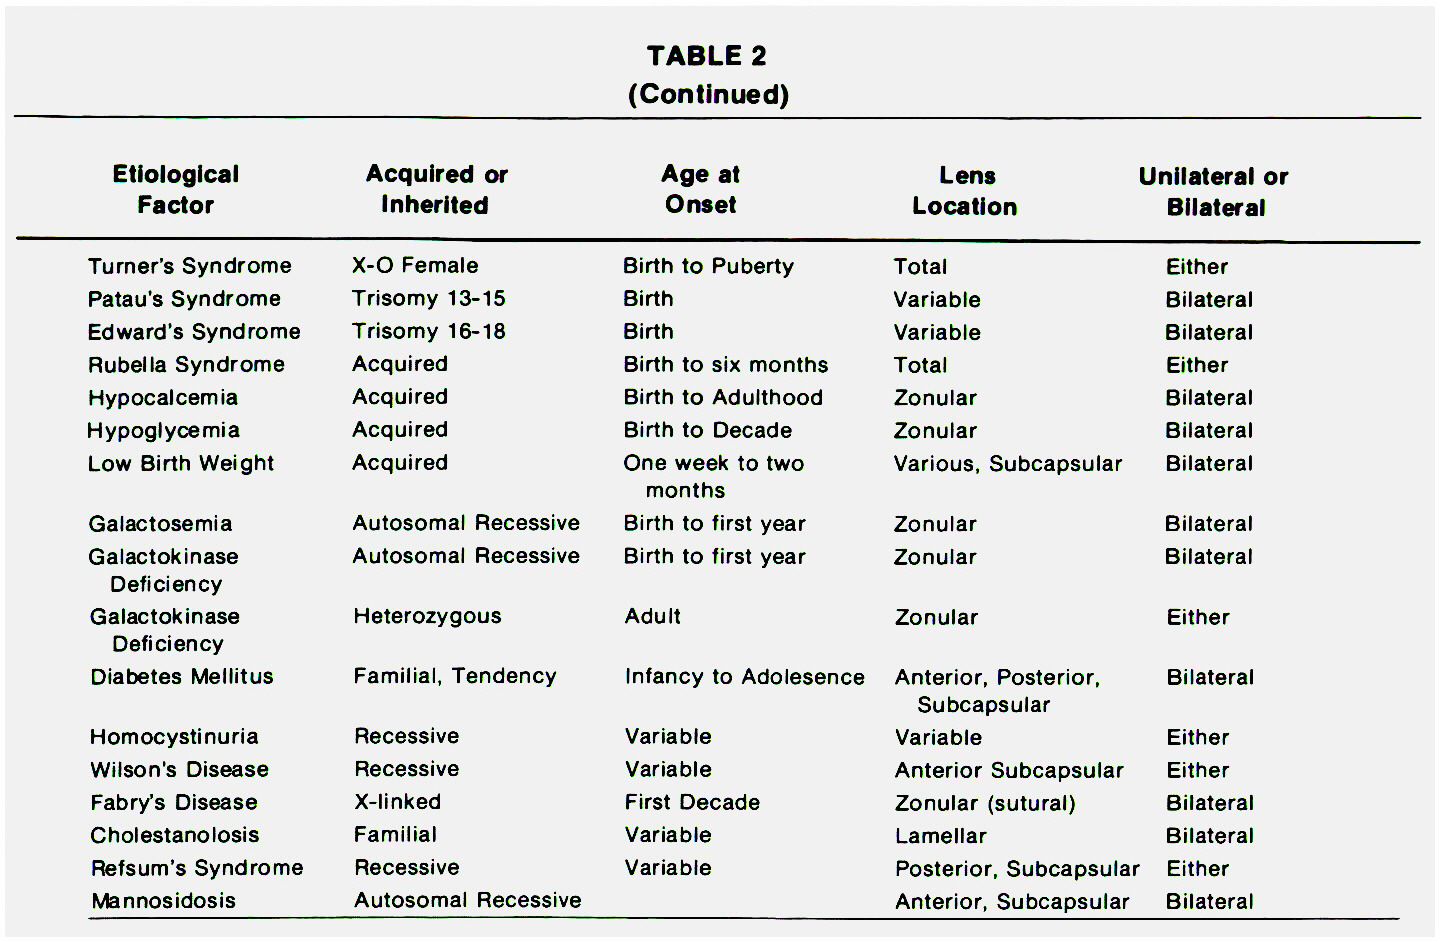 TABLE 2CATARACTS ASSOCIATED WITH AFNFTIC SYNDROMES